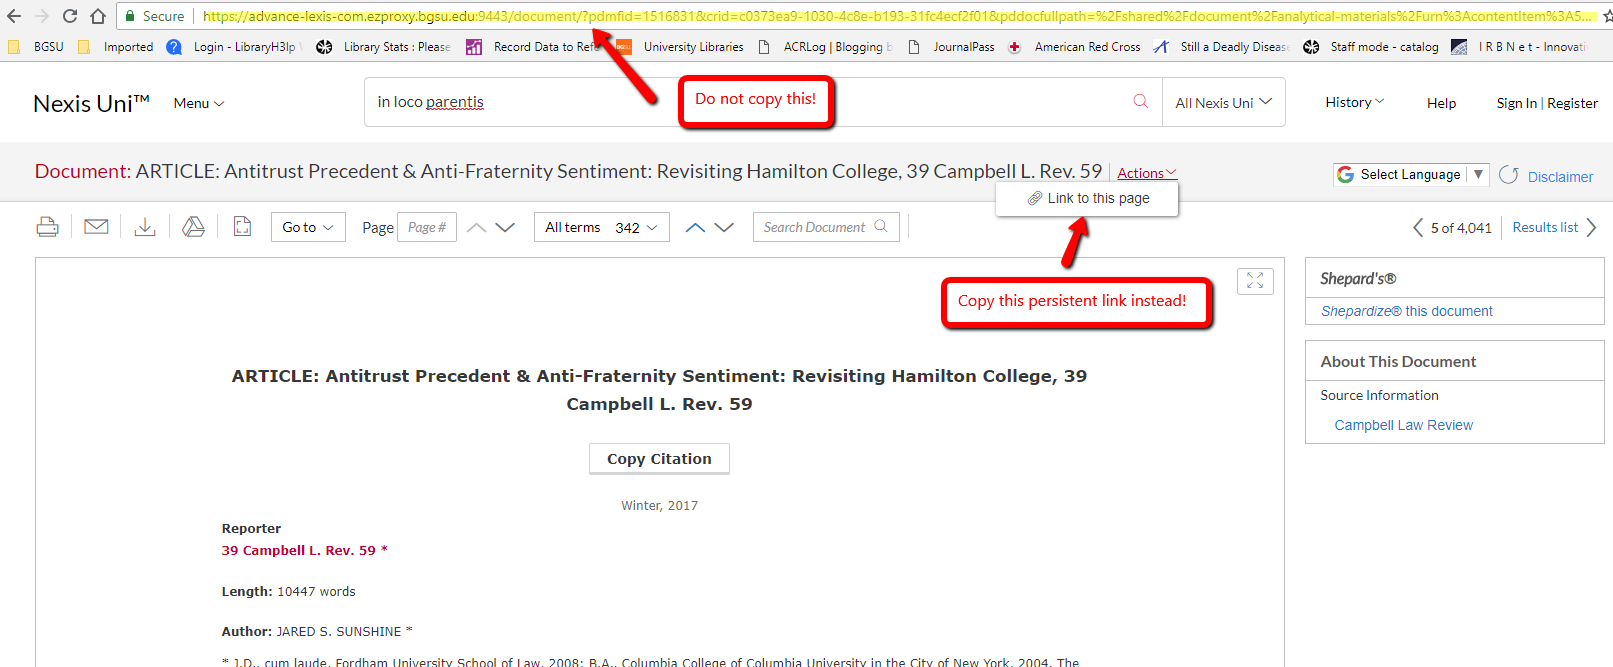 Nexus Uni screenshot showing how to get a persistent link: Don't copy this (address bar), copy this link instead!